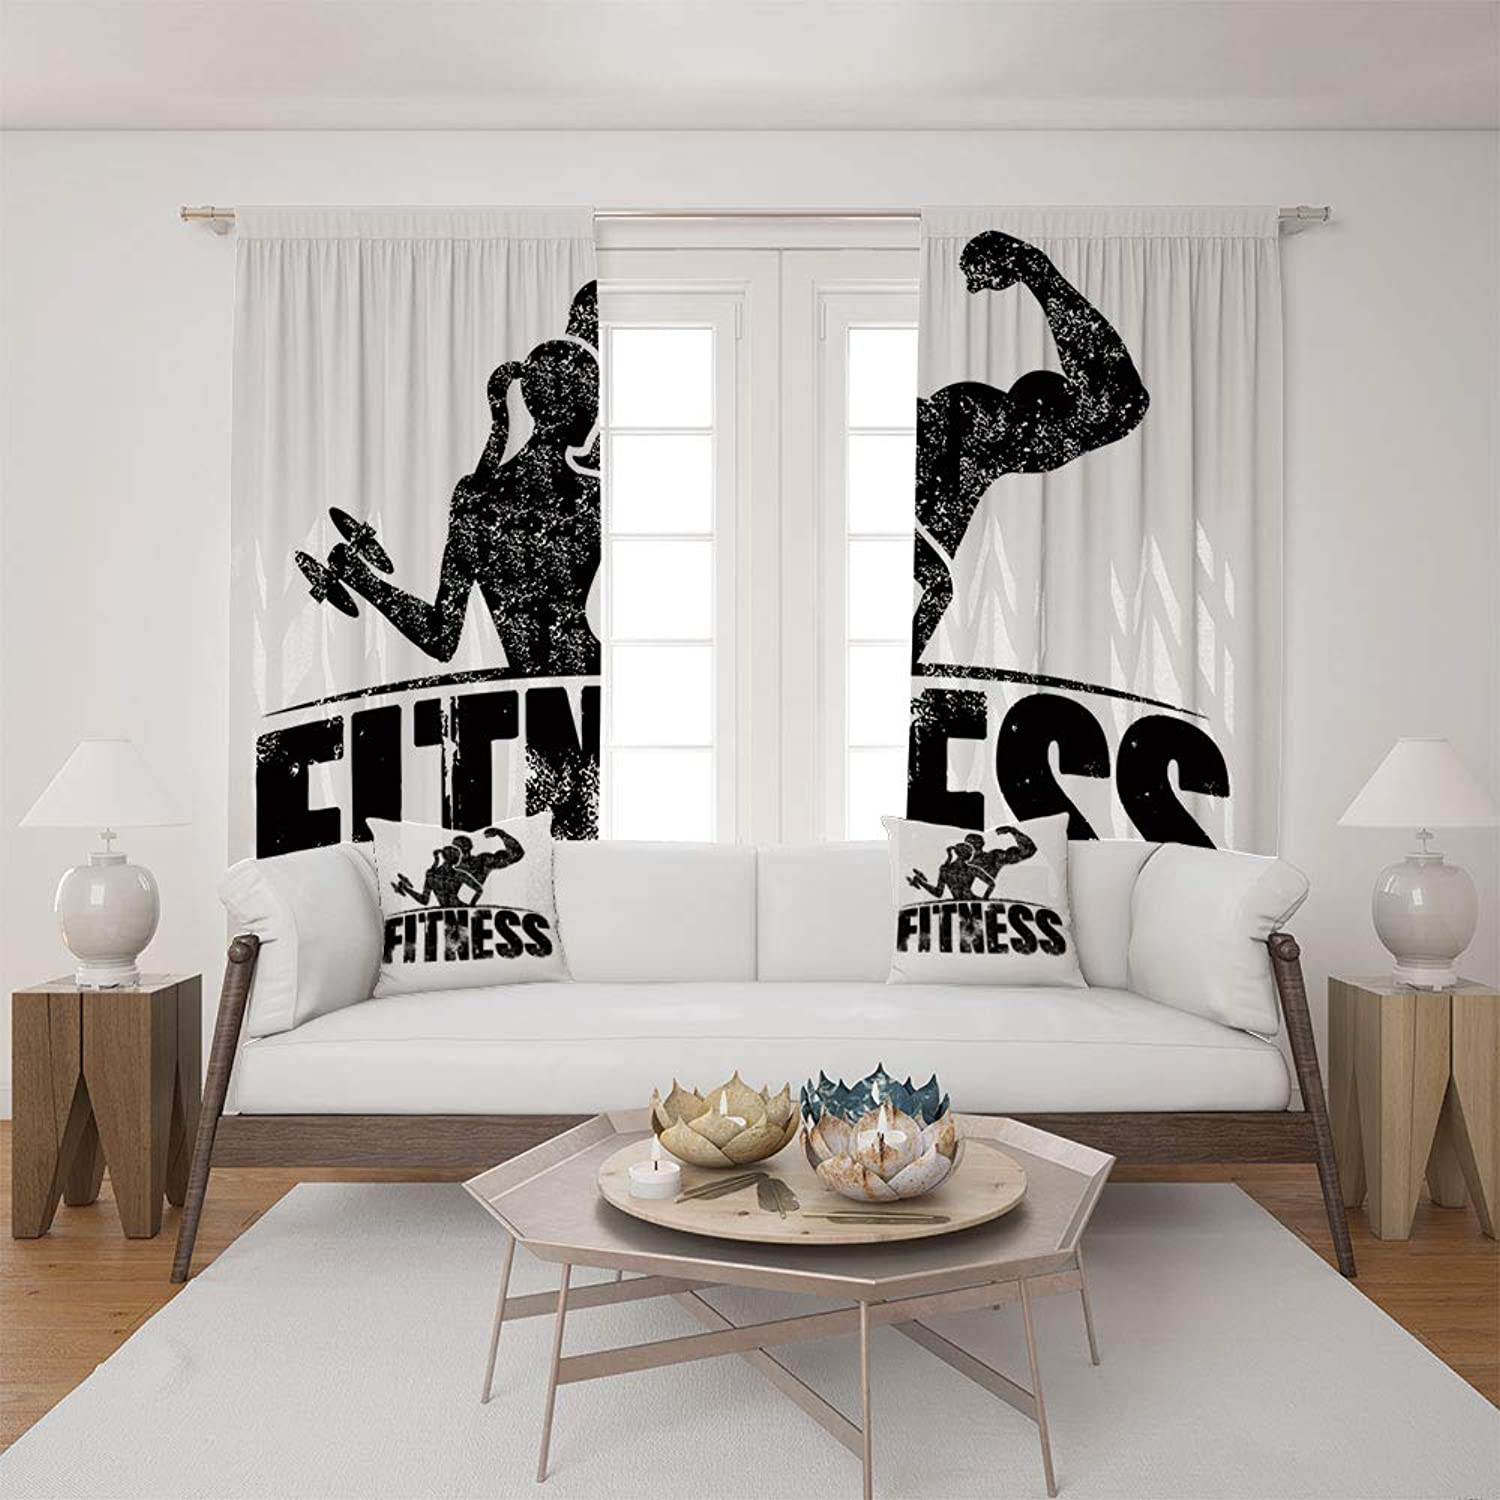 2 Panel Set Satin Window Drapes Living Room Curtains and 2 Pillowcases,Silhouettes Working Out Muscles Strong Training,The Perfect Combination of Curtains and Pillows Makes Your Living Room Warmer